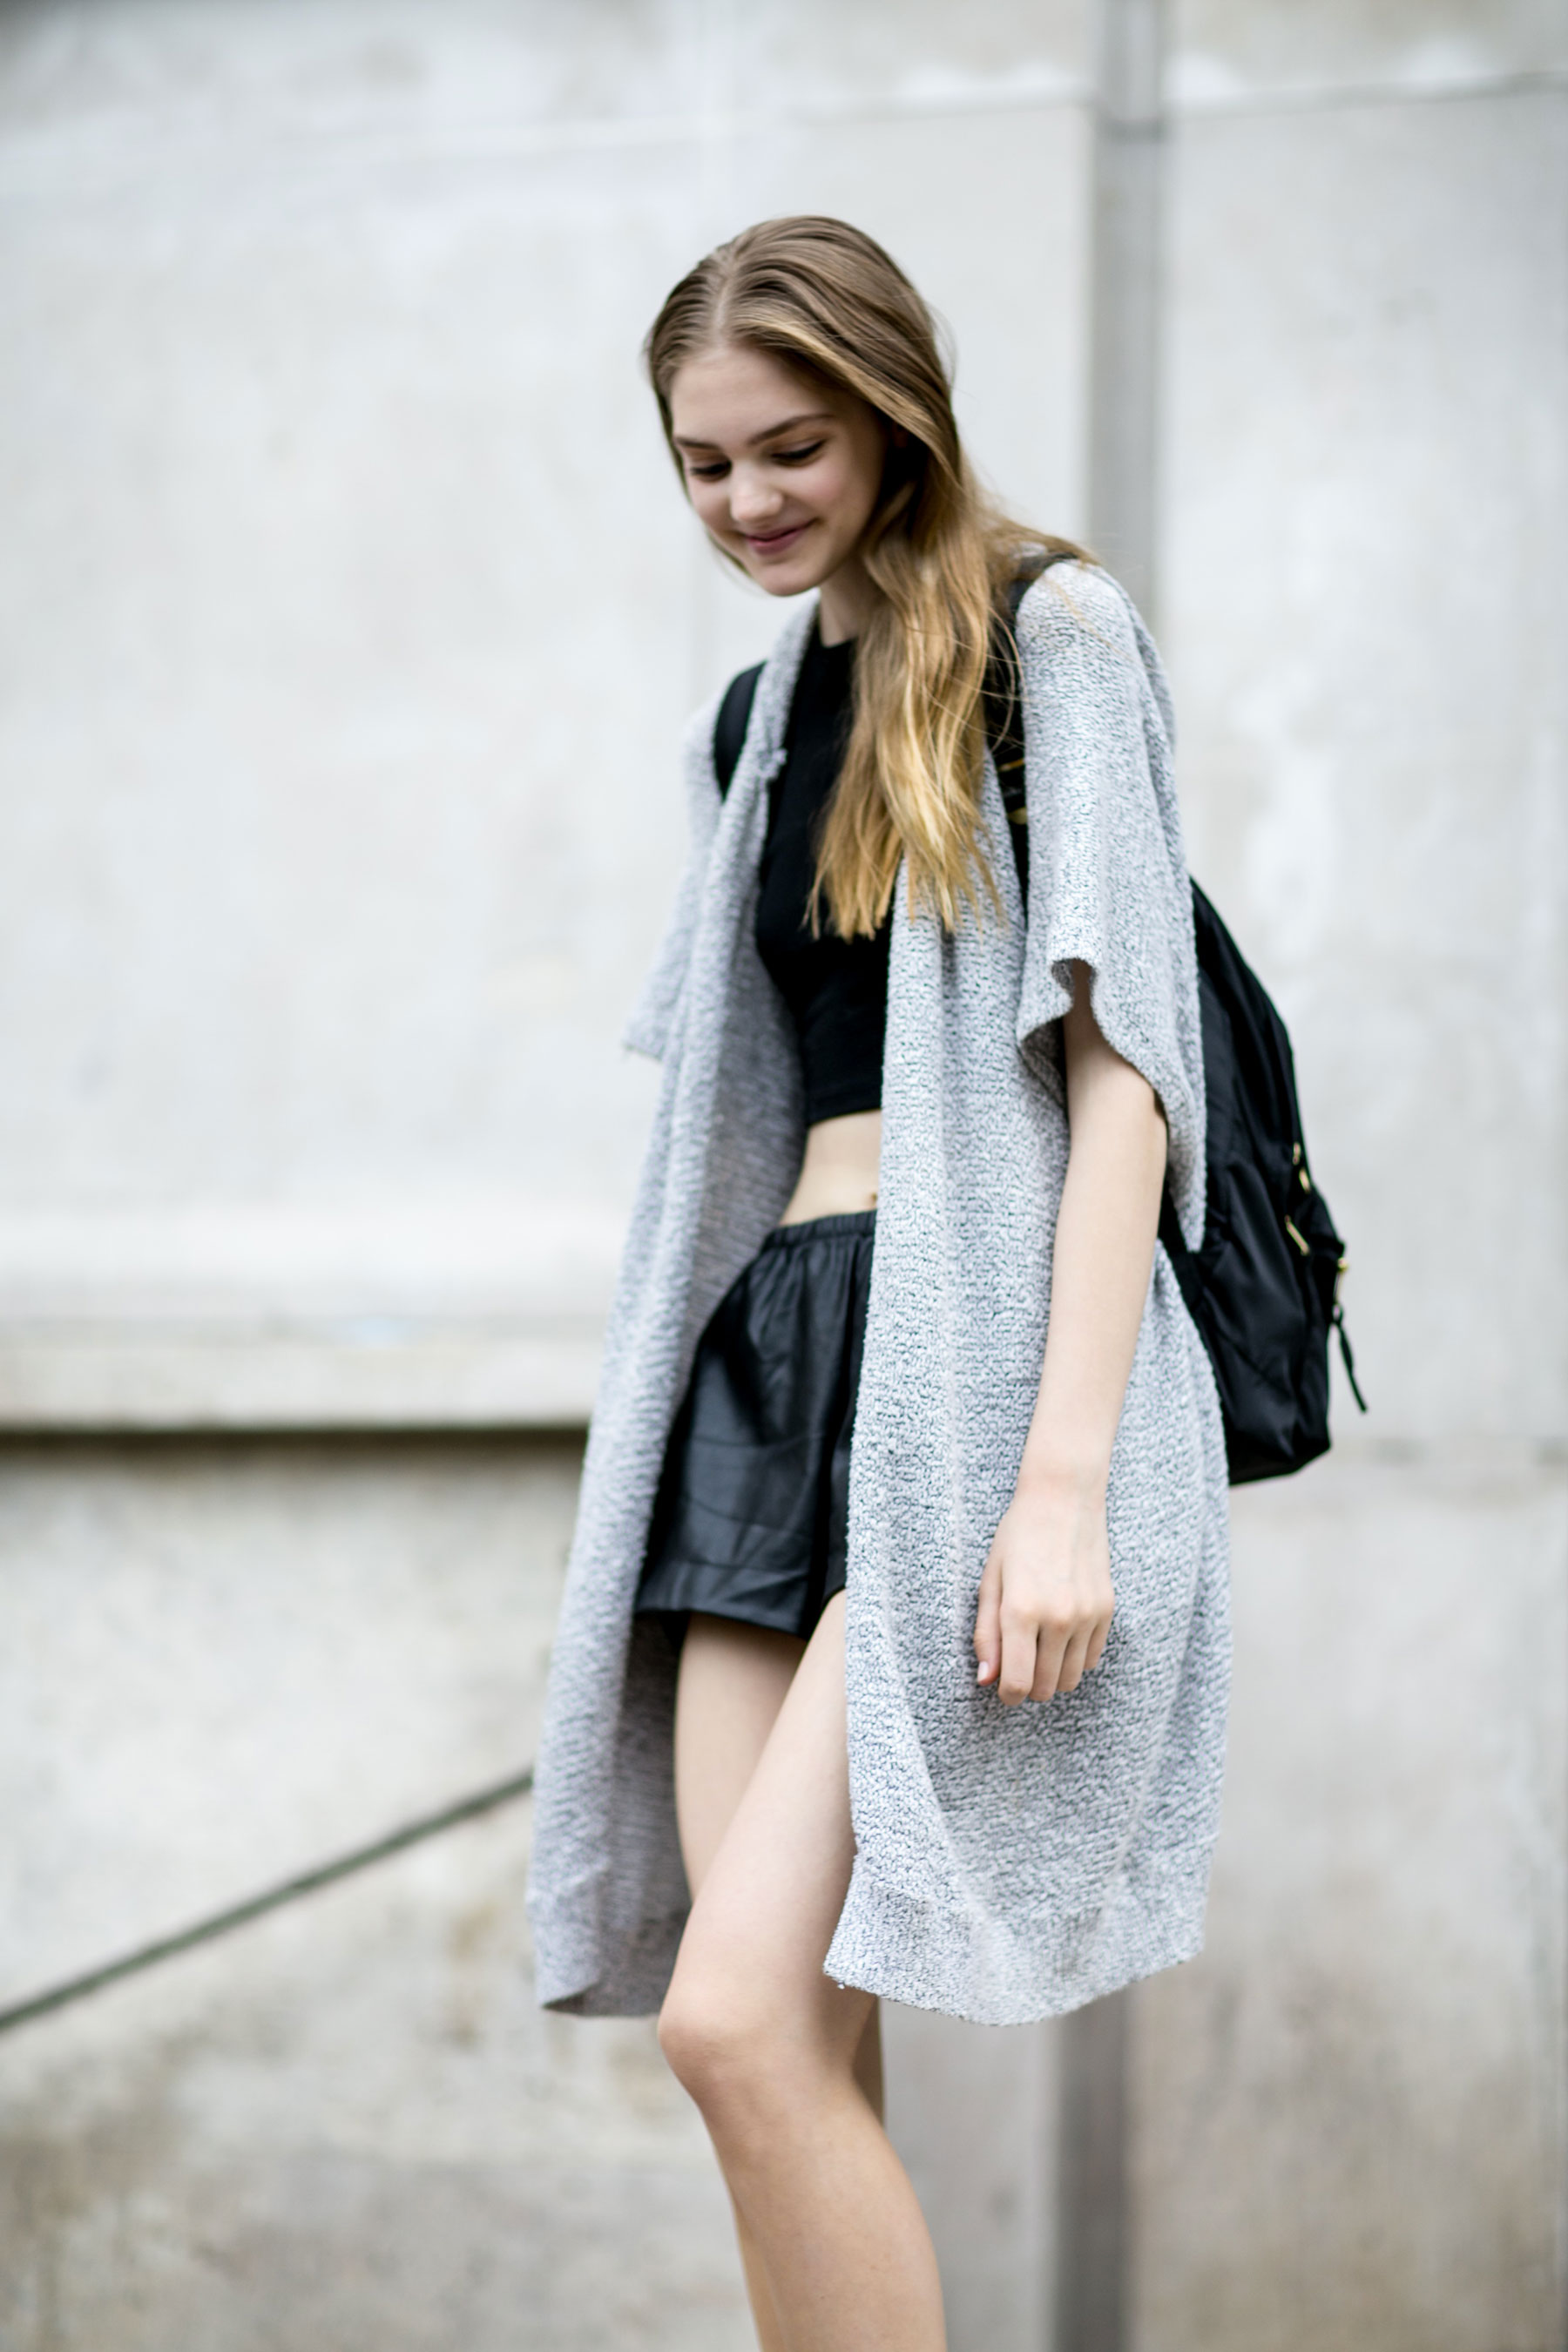 The Best Of Paris Couture Fashion Week Street Style Day